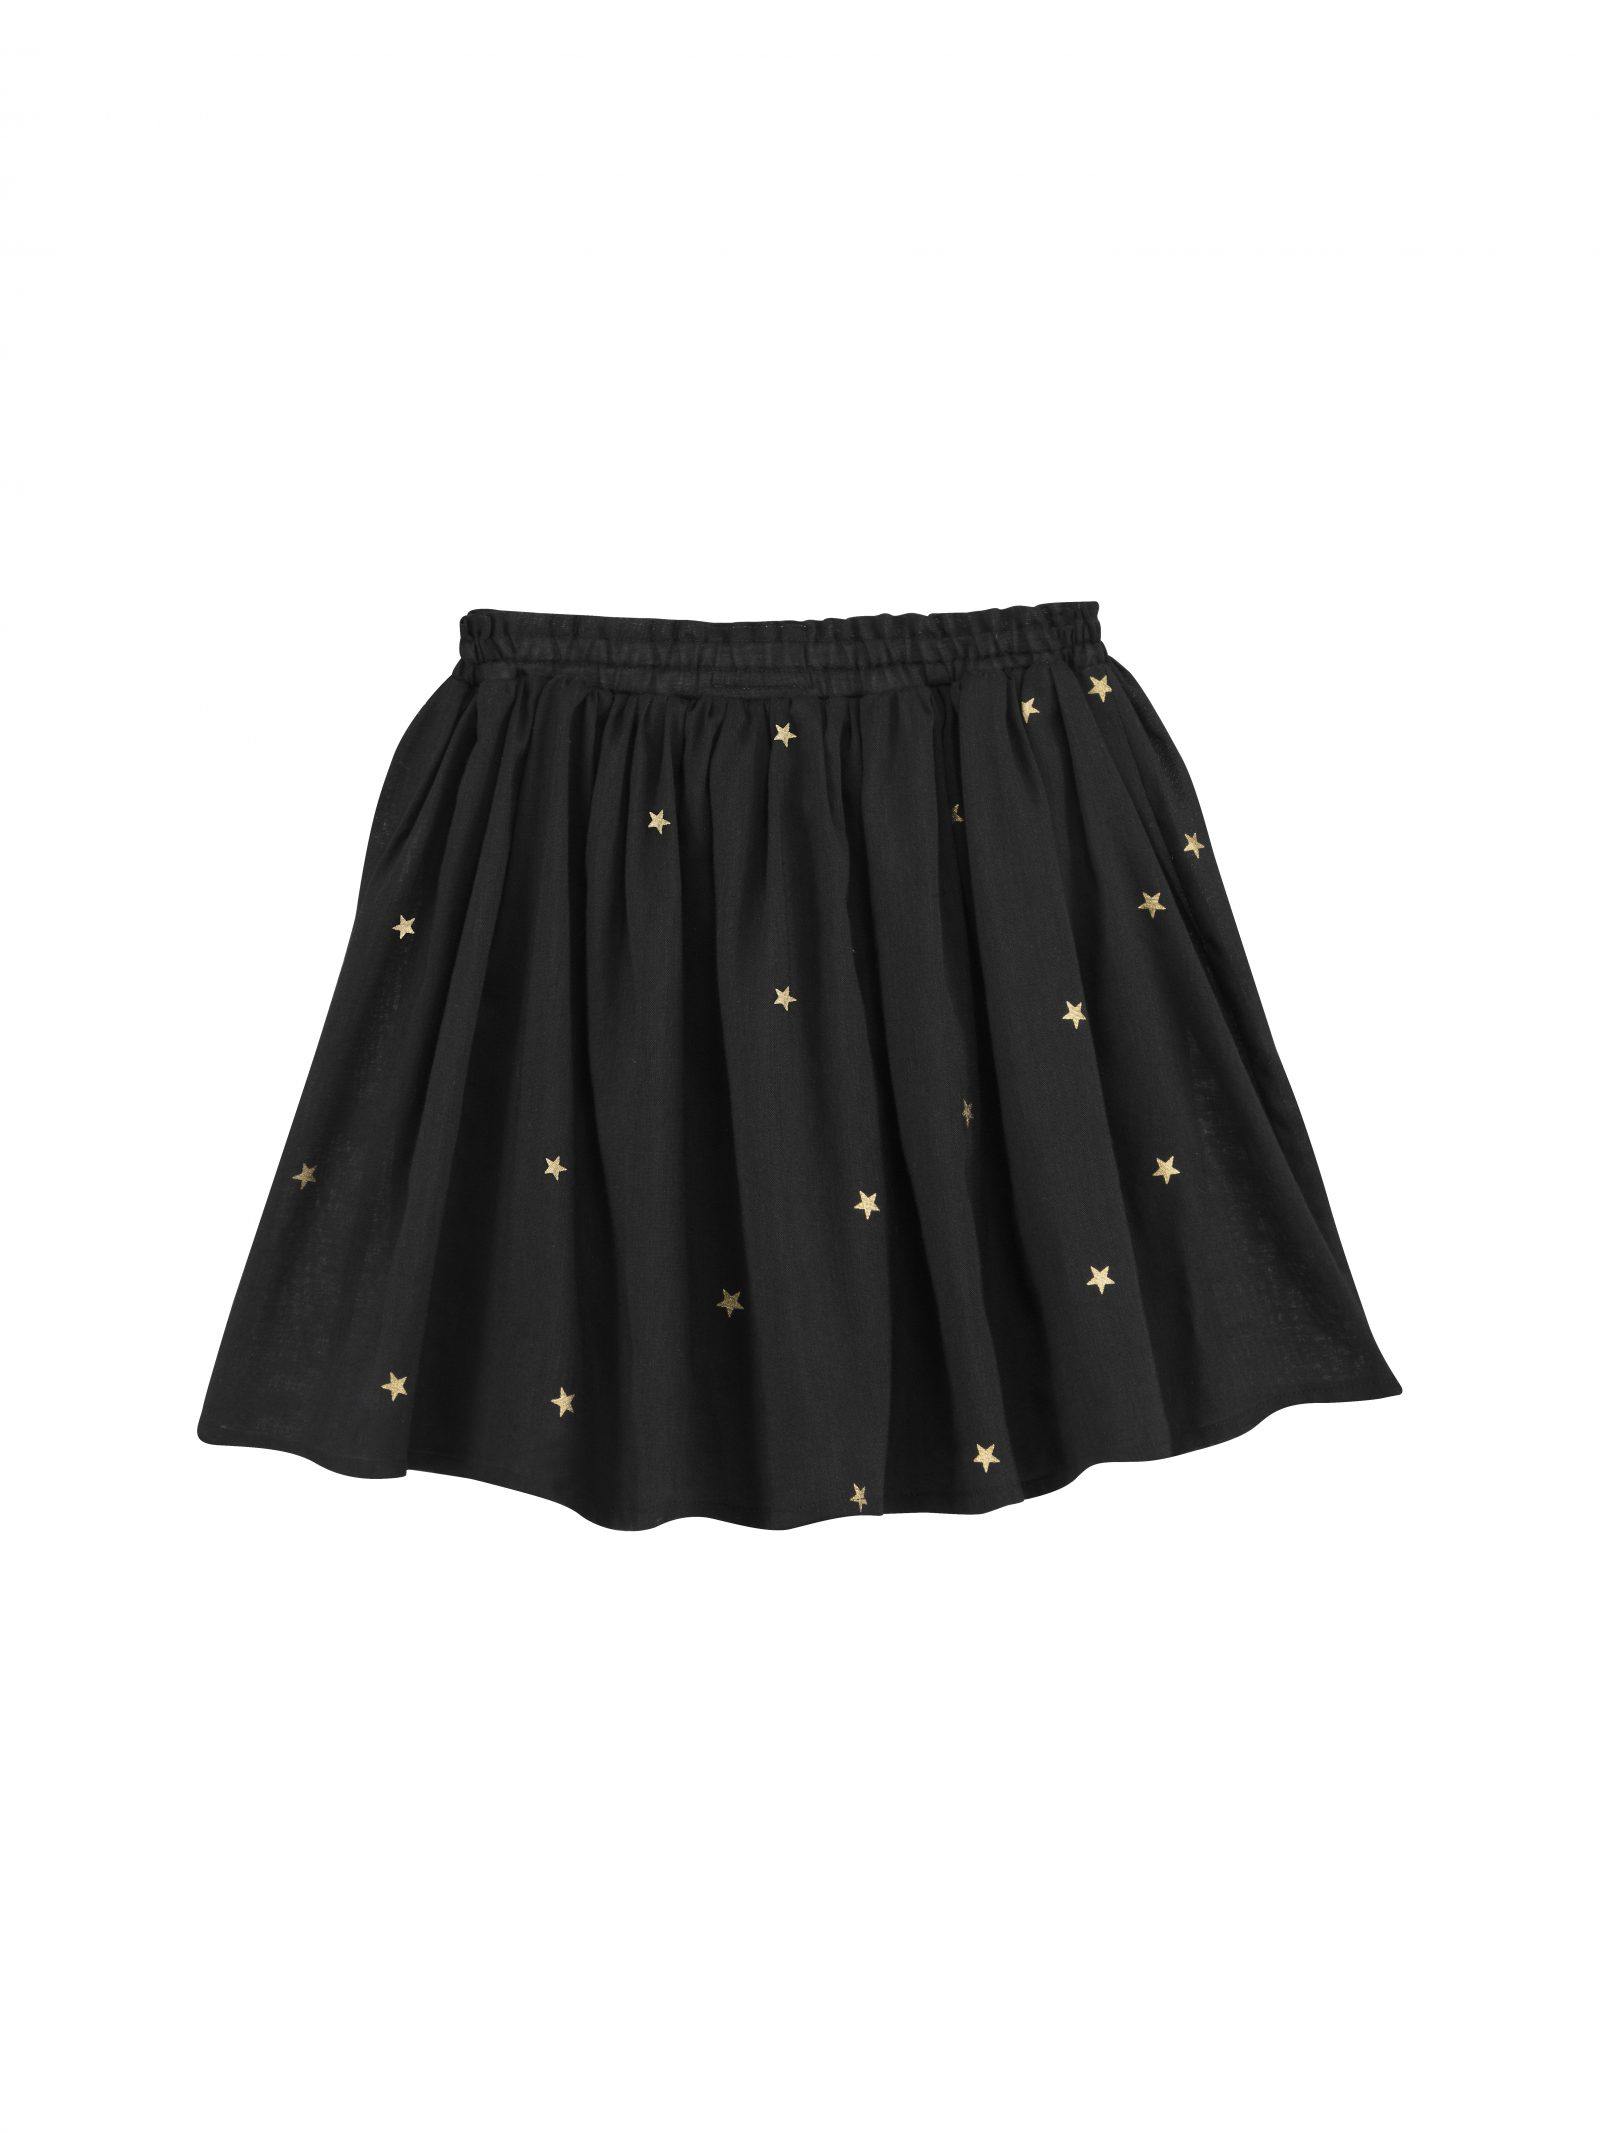 Mary Mini Skirt